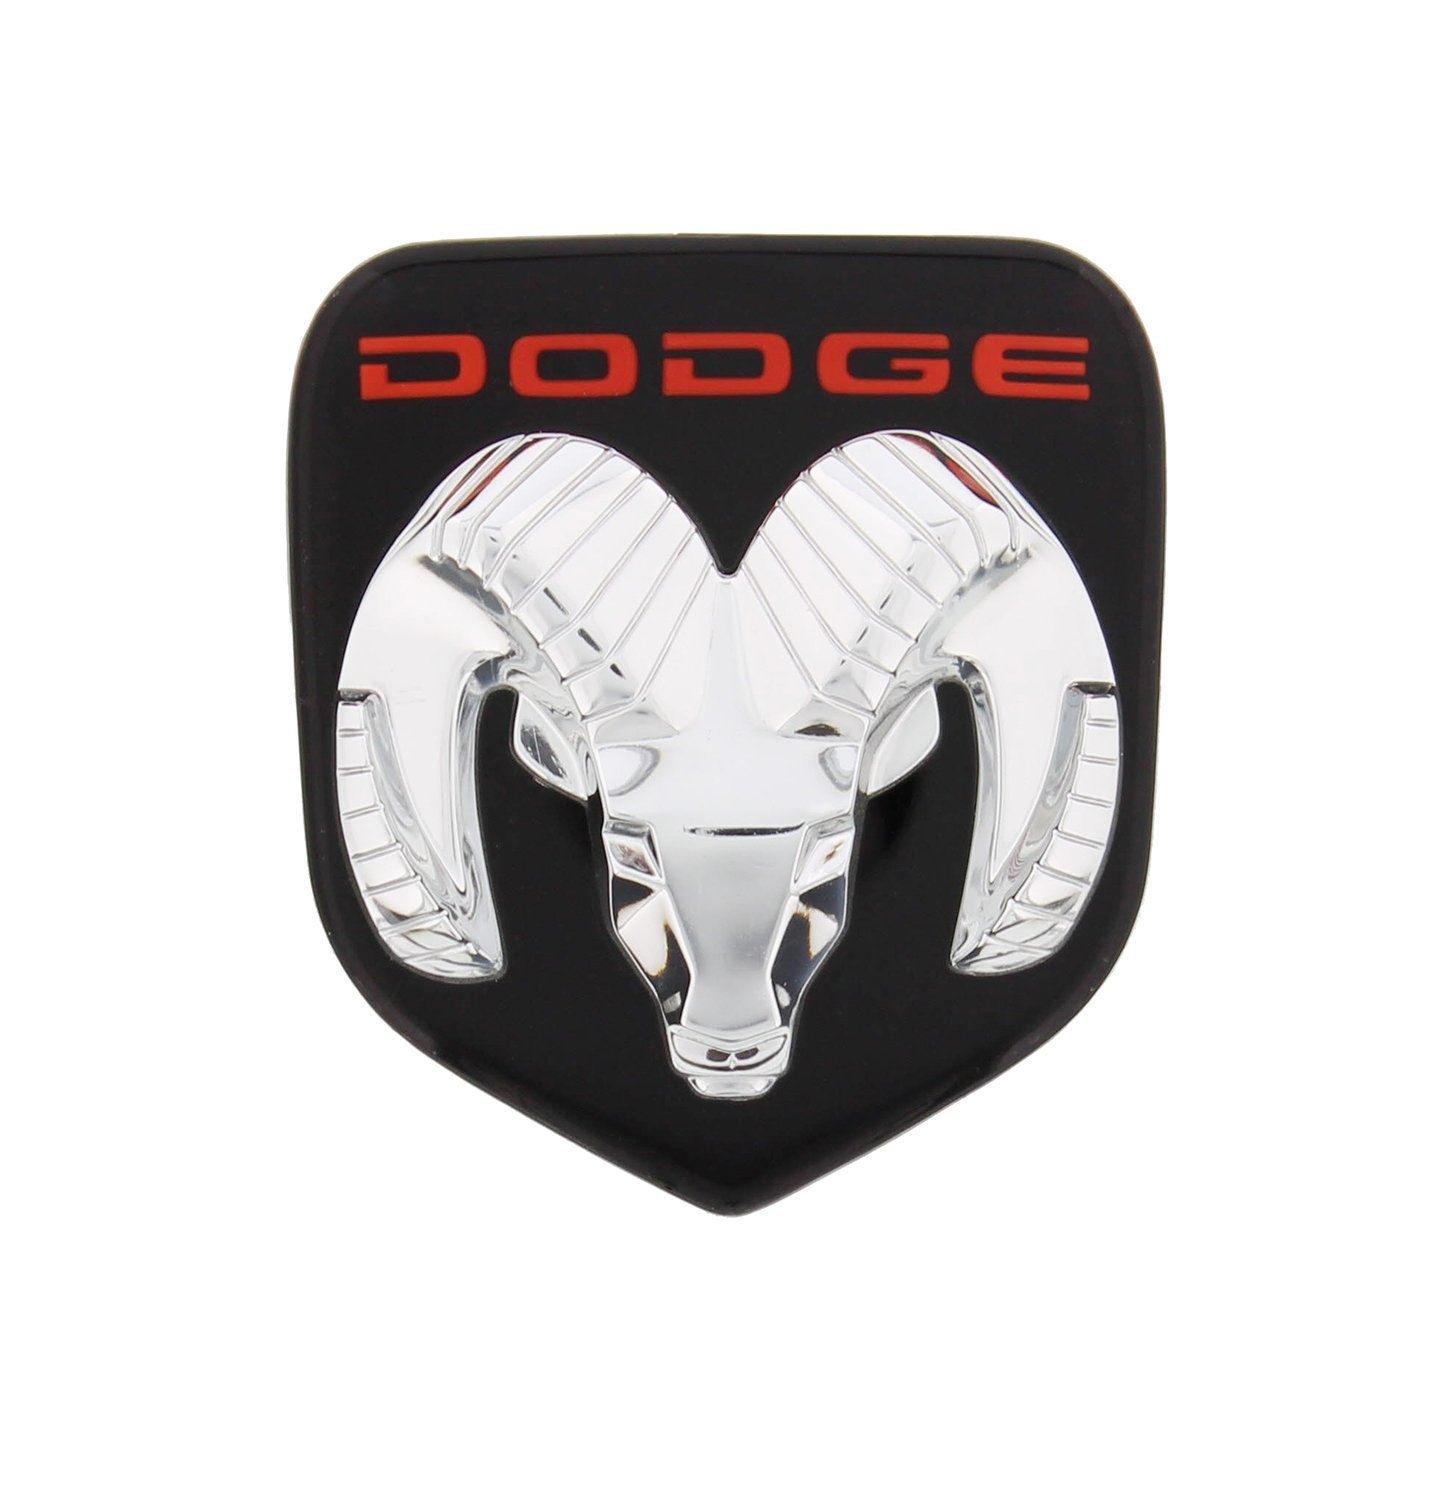 DODGE RAM DAKOTA DURANGO GRILLE DECAL EMBLEM MOPAR 55295240